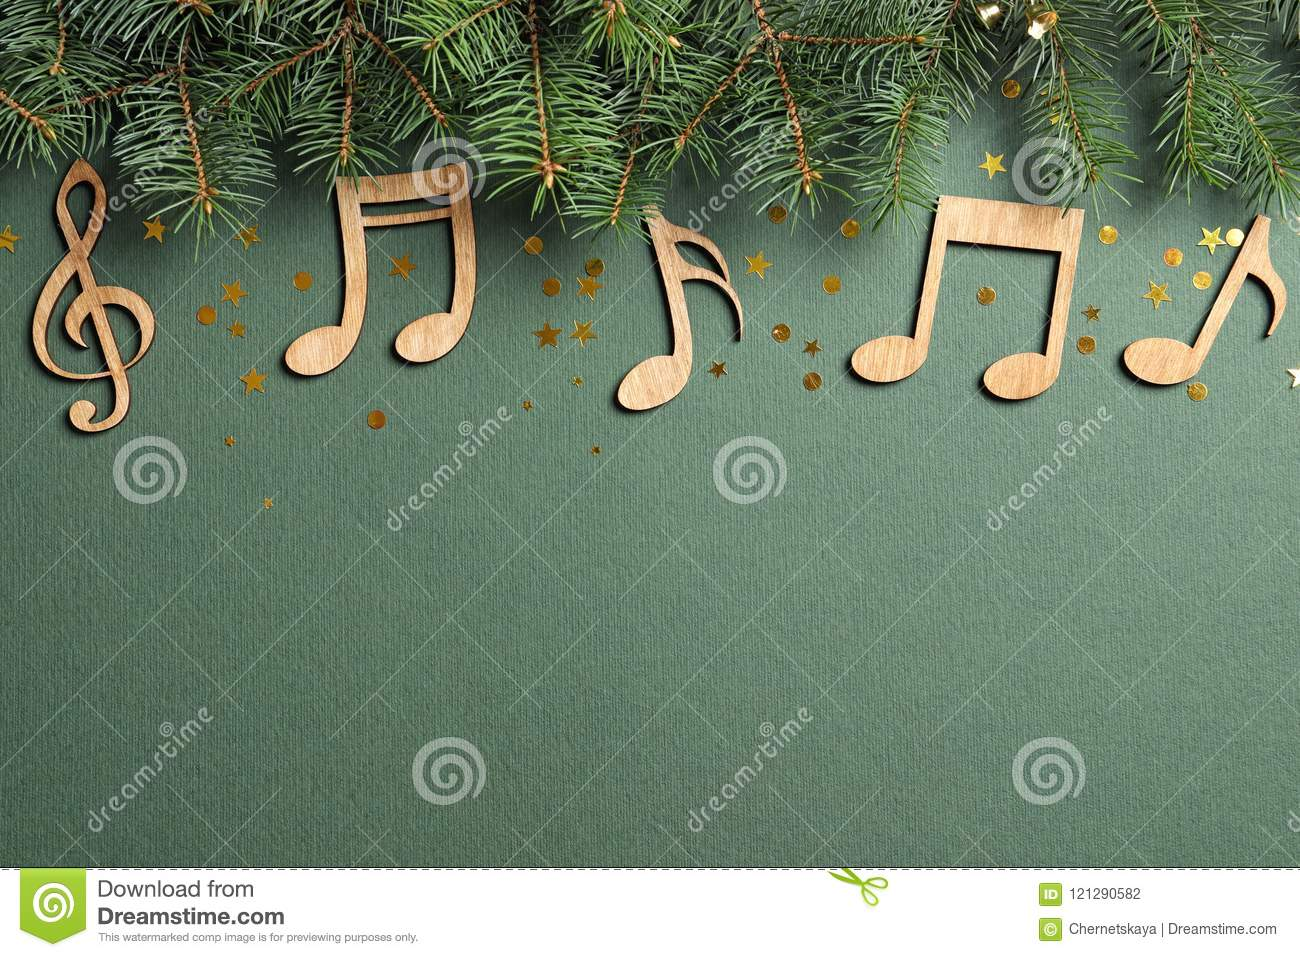 Christian Christmas Music.Flat Lay Composition With Fir Tree Branches Stock Photo